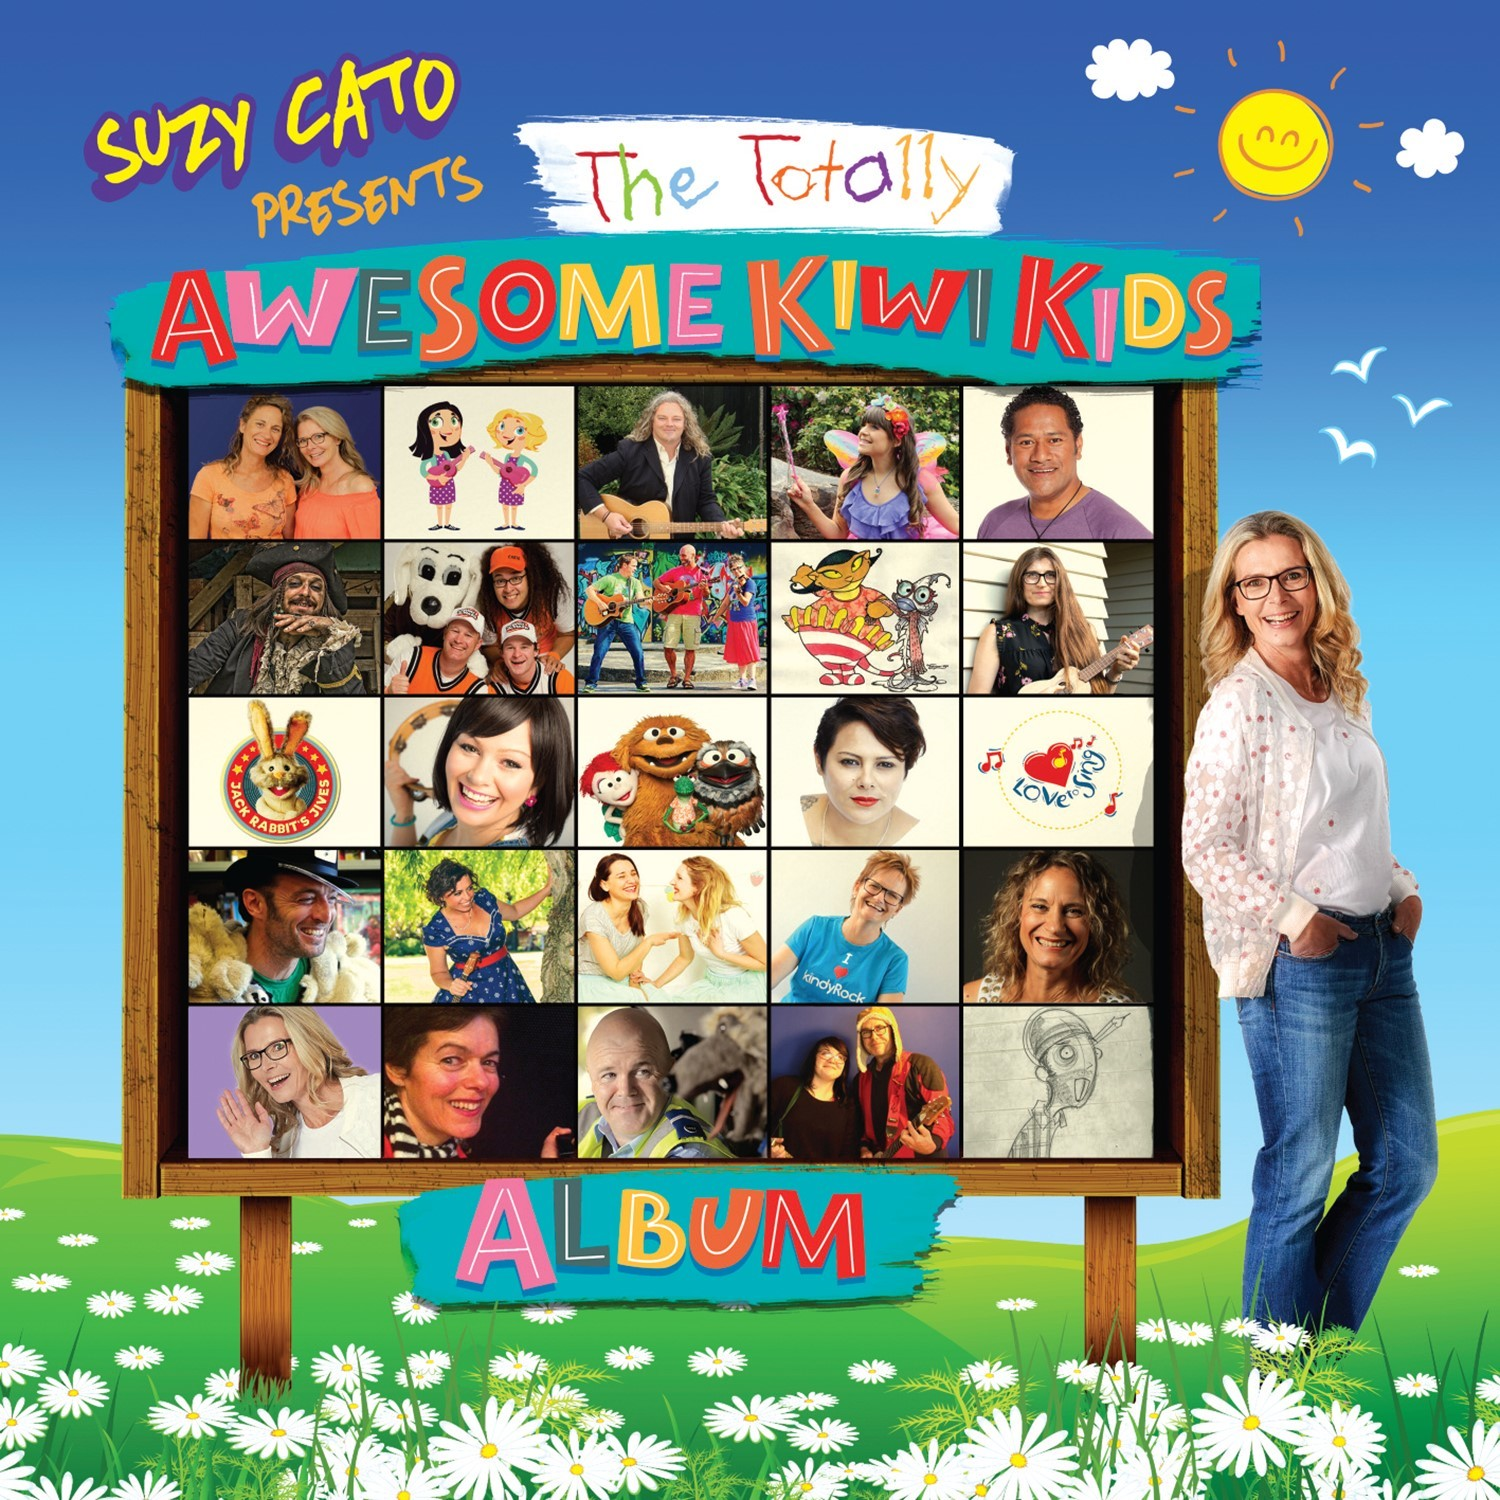 Suzy Cato Presents The Totally Awesome Kiwi Kids Album by Various image